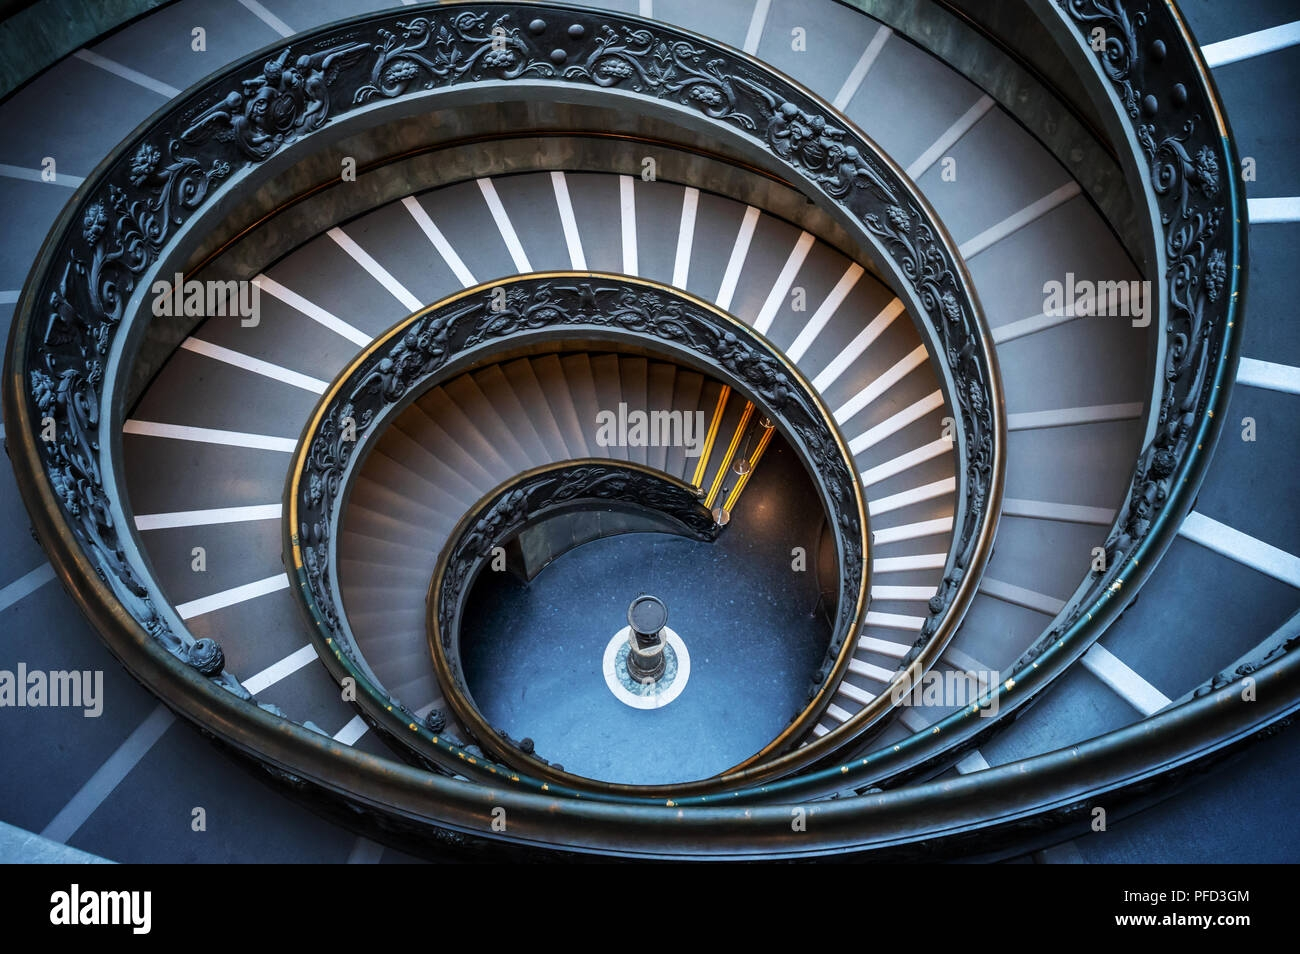 Vatican Double Helix Spiral Staircase In Rome Italy Stock Photo | Double Helix Spiral Staircase | Plan | Double Helical | Three Landing Design | Architecture | 1950'S